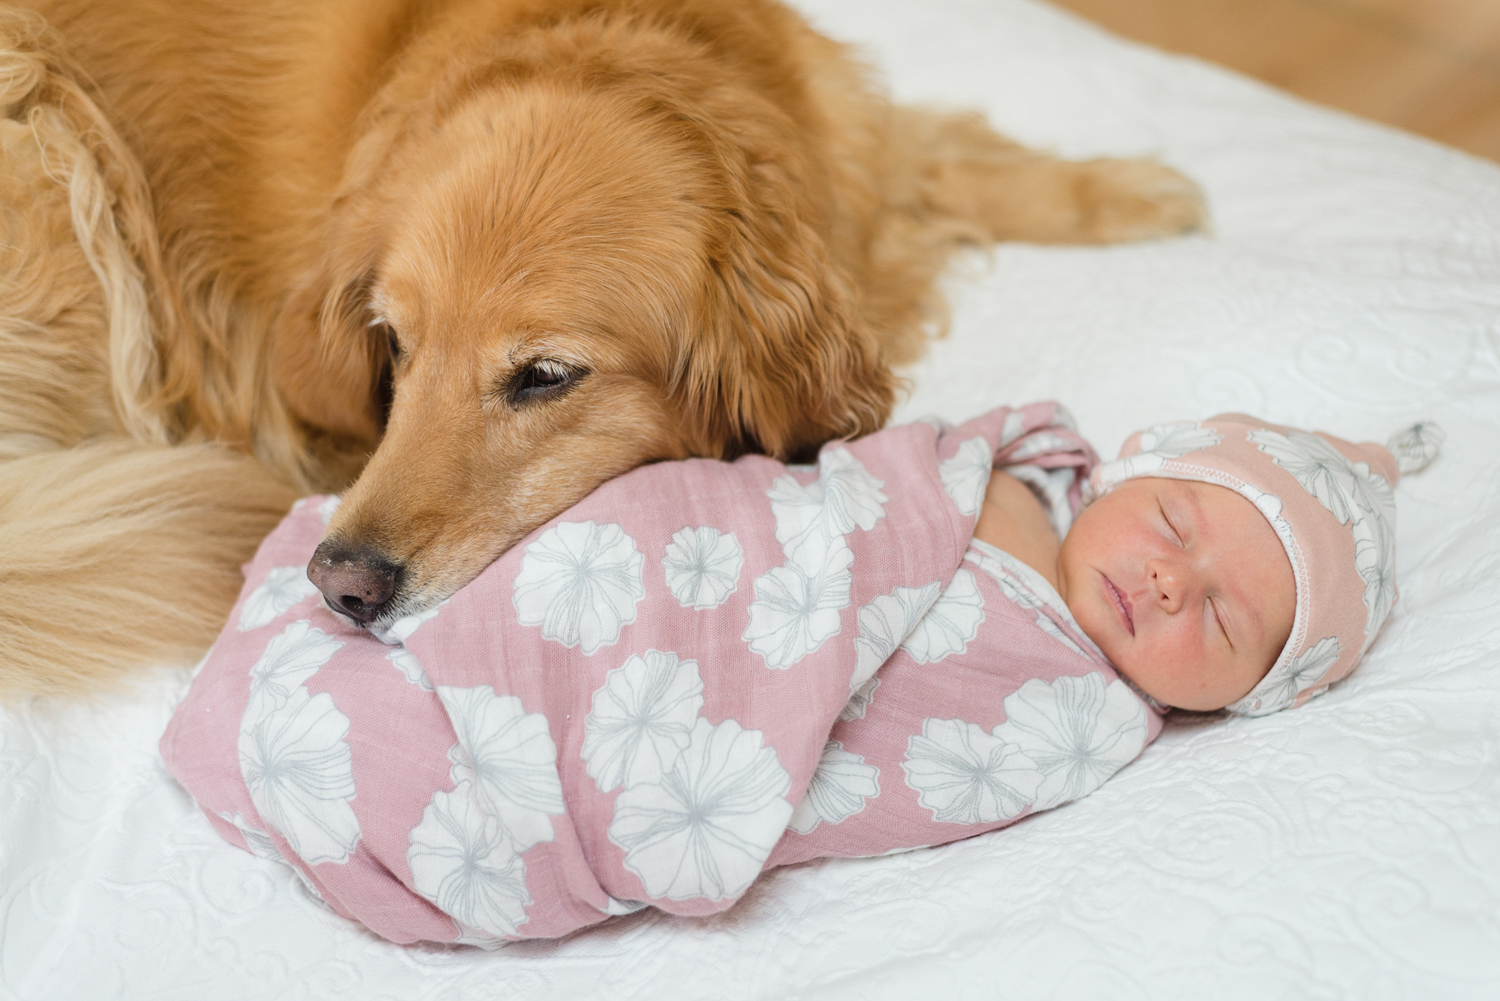 Dog snuggles baby for newborn portrait | Pets In Human Photo Session